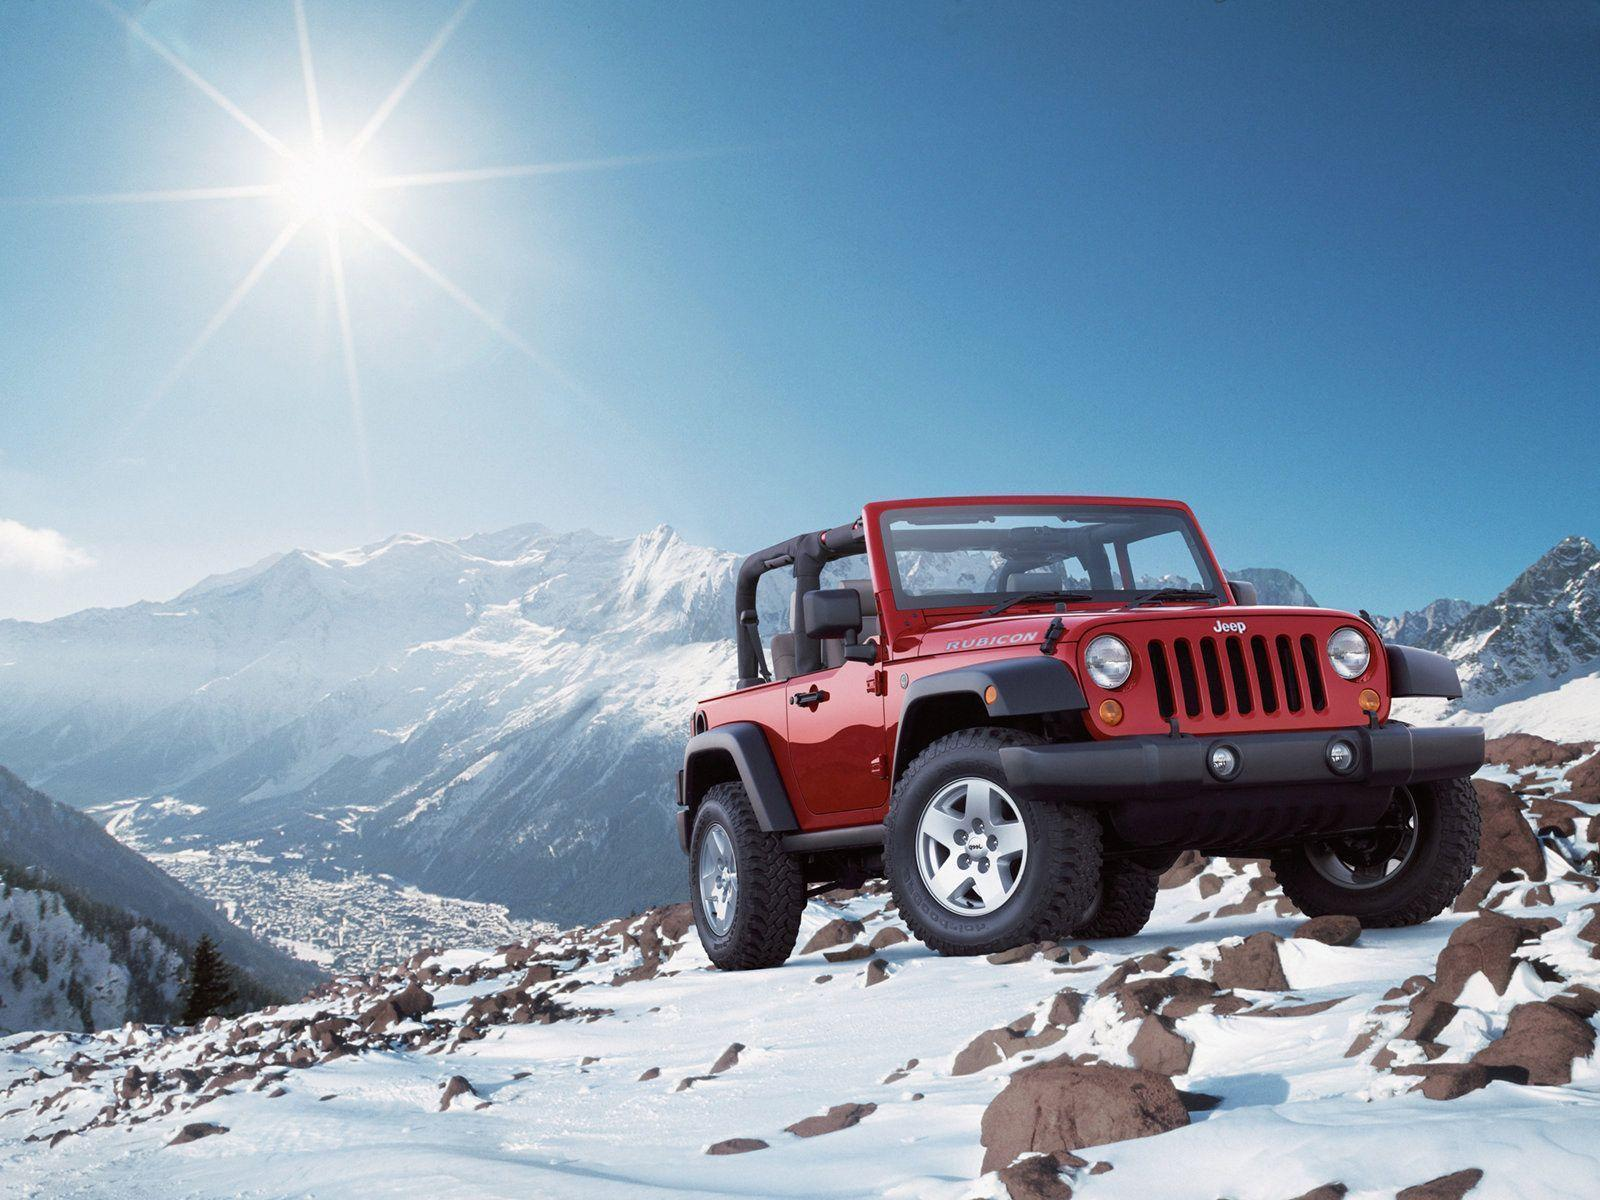 Jeep Wallpapers HD Quality Jeep Images Jeep Wallpapers HDQ